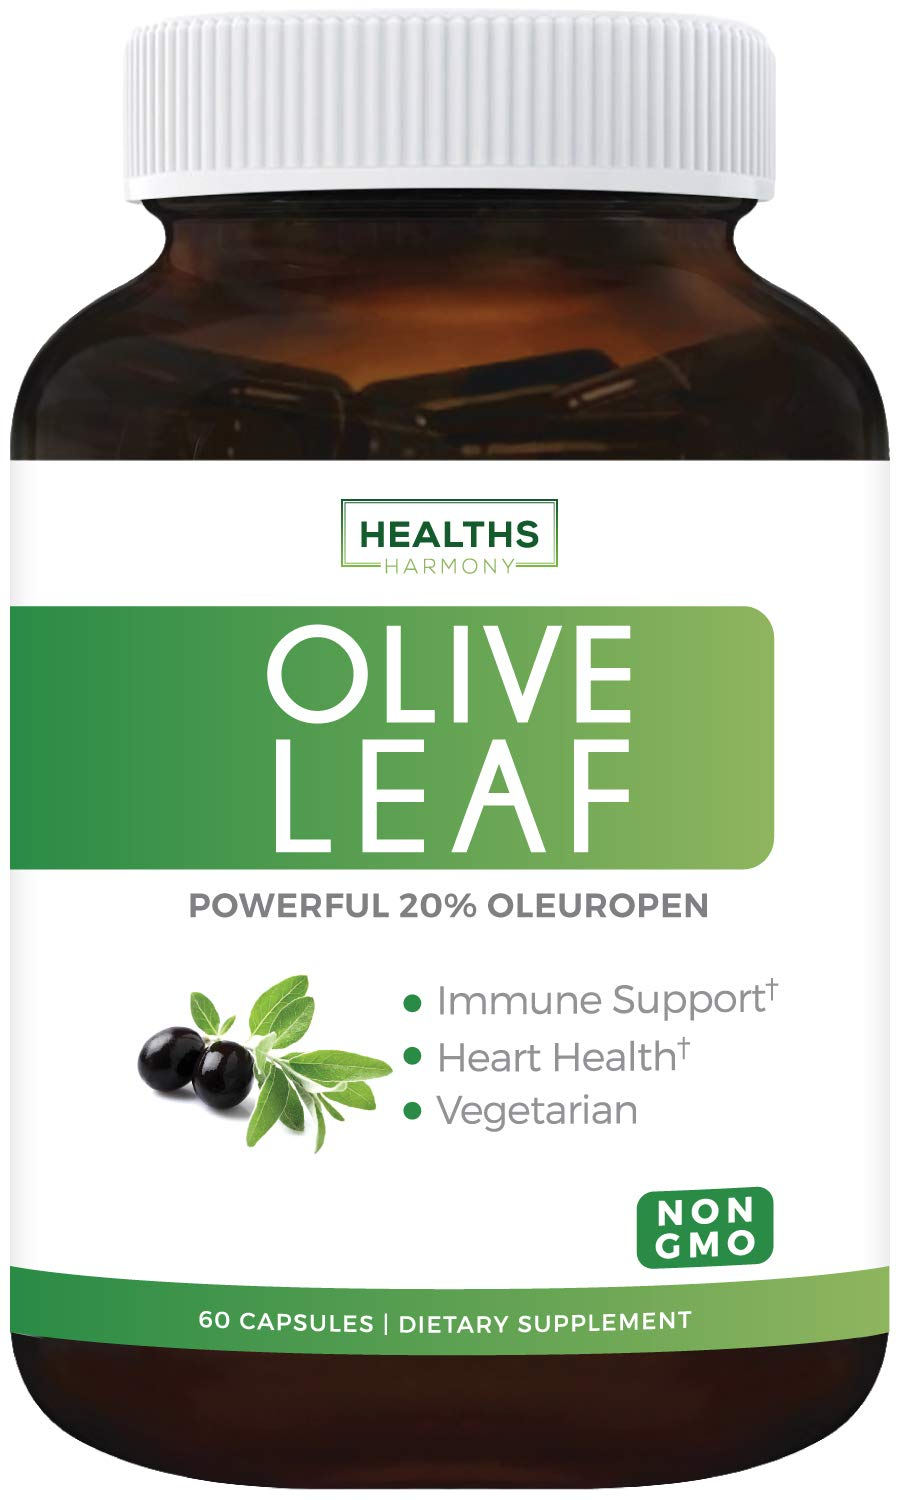 Olive Leaf Extract (Non-GMO) Super Strength: 20% Oleuropein - 750mg -  Vegetarian -